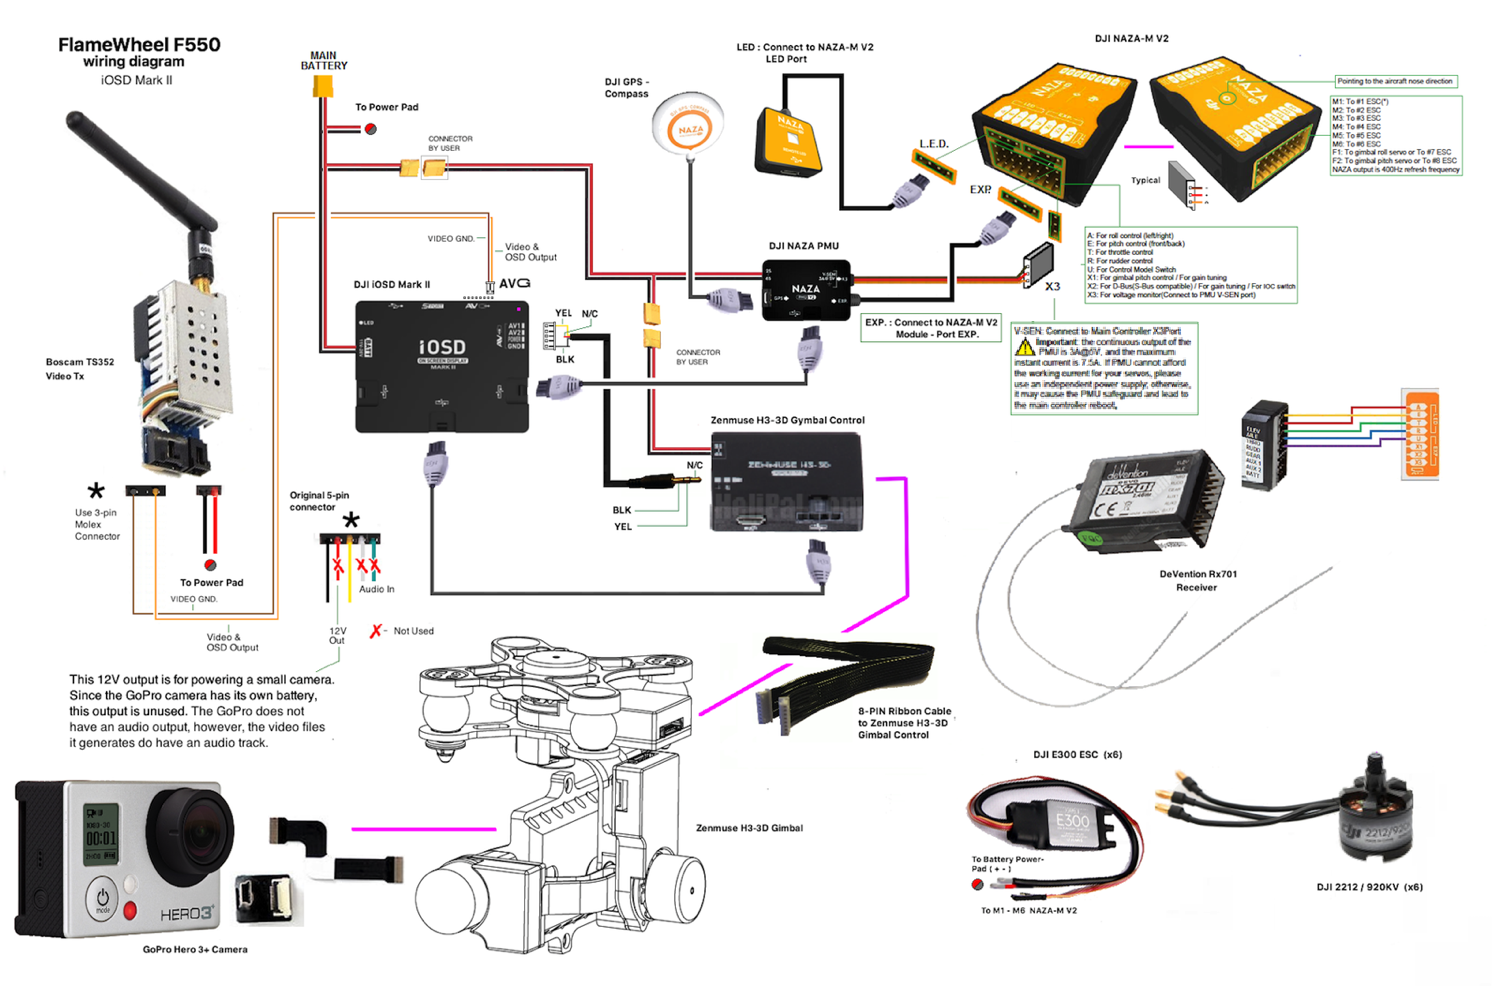 125952ym4r1wsj6shhhbb6 dji flame wheel f450 and f550 owners thread dji forum naza wiring diagram at gsmx.co